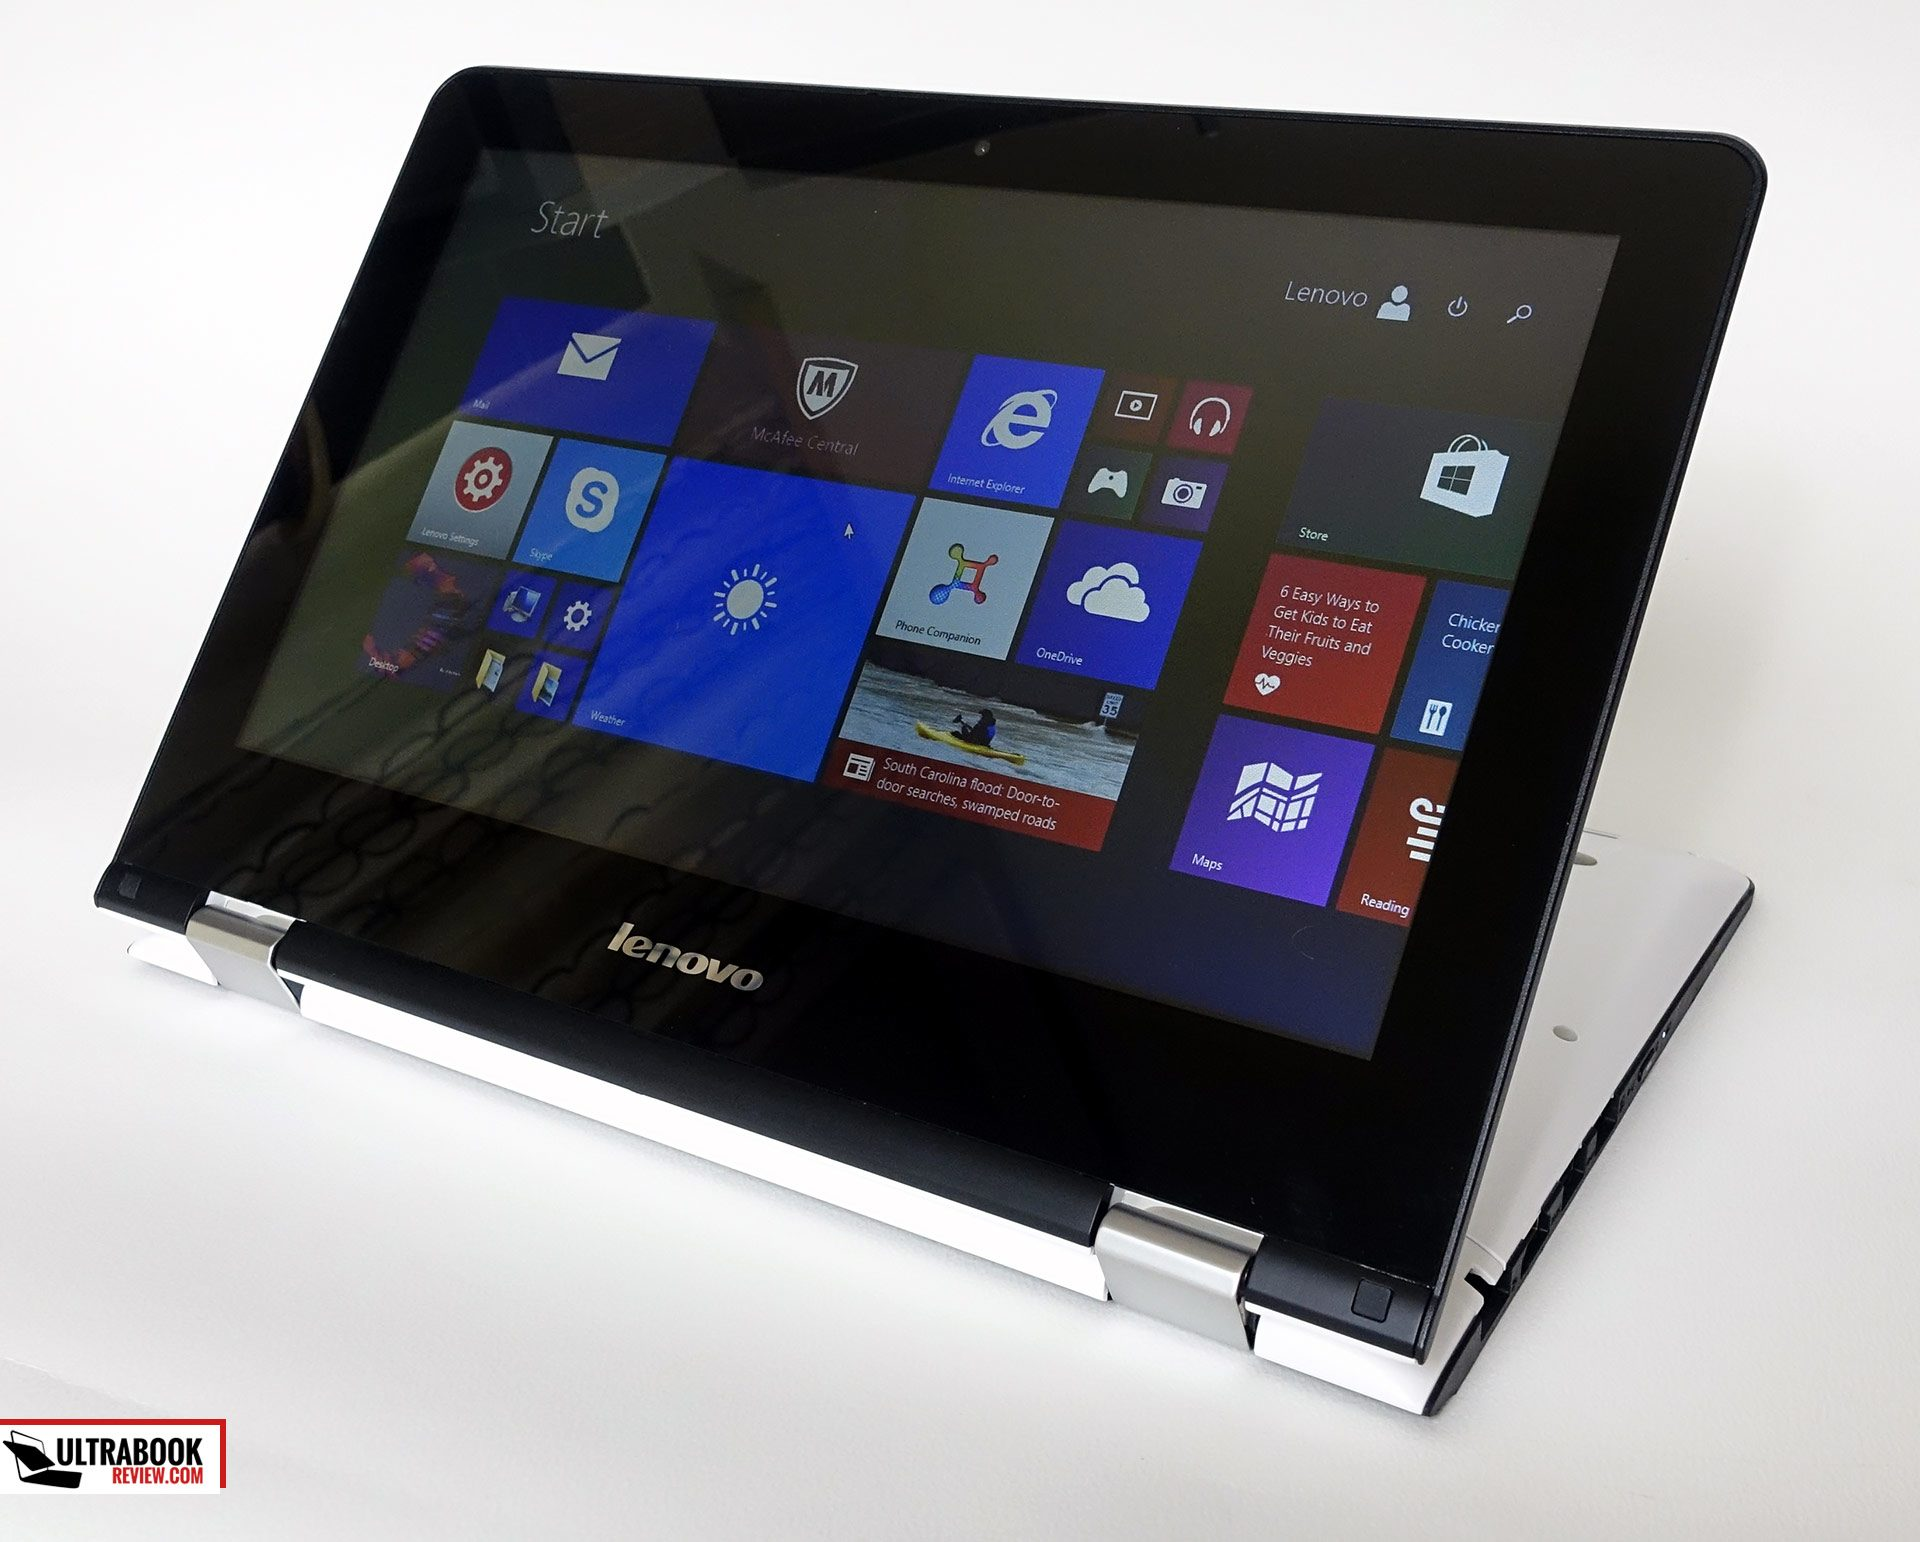 Lenovo Yoga 300 11 (Flex 3 11) review - an affordable 11